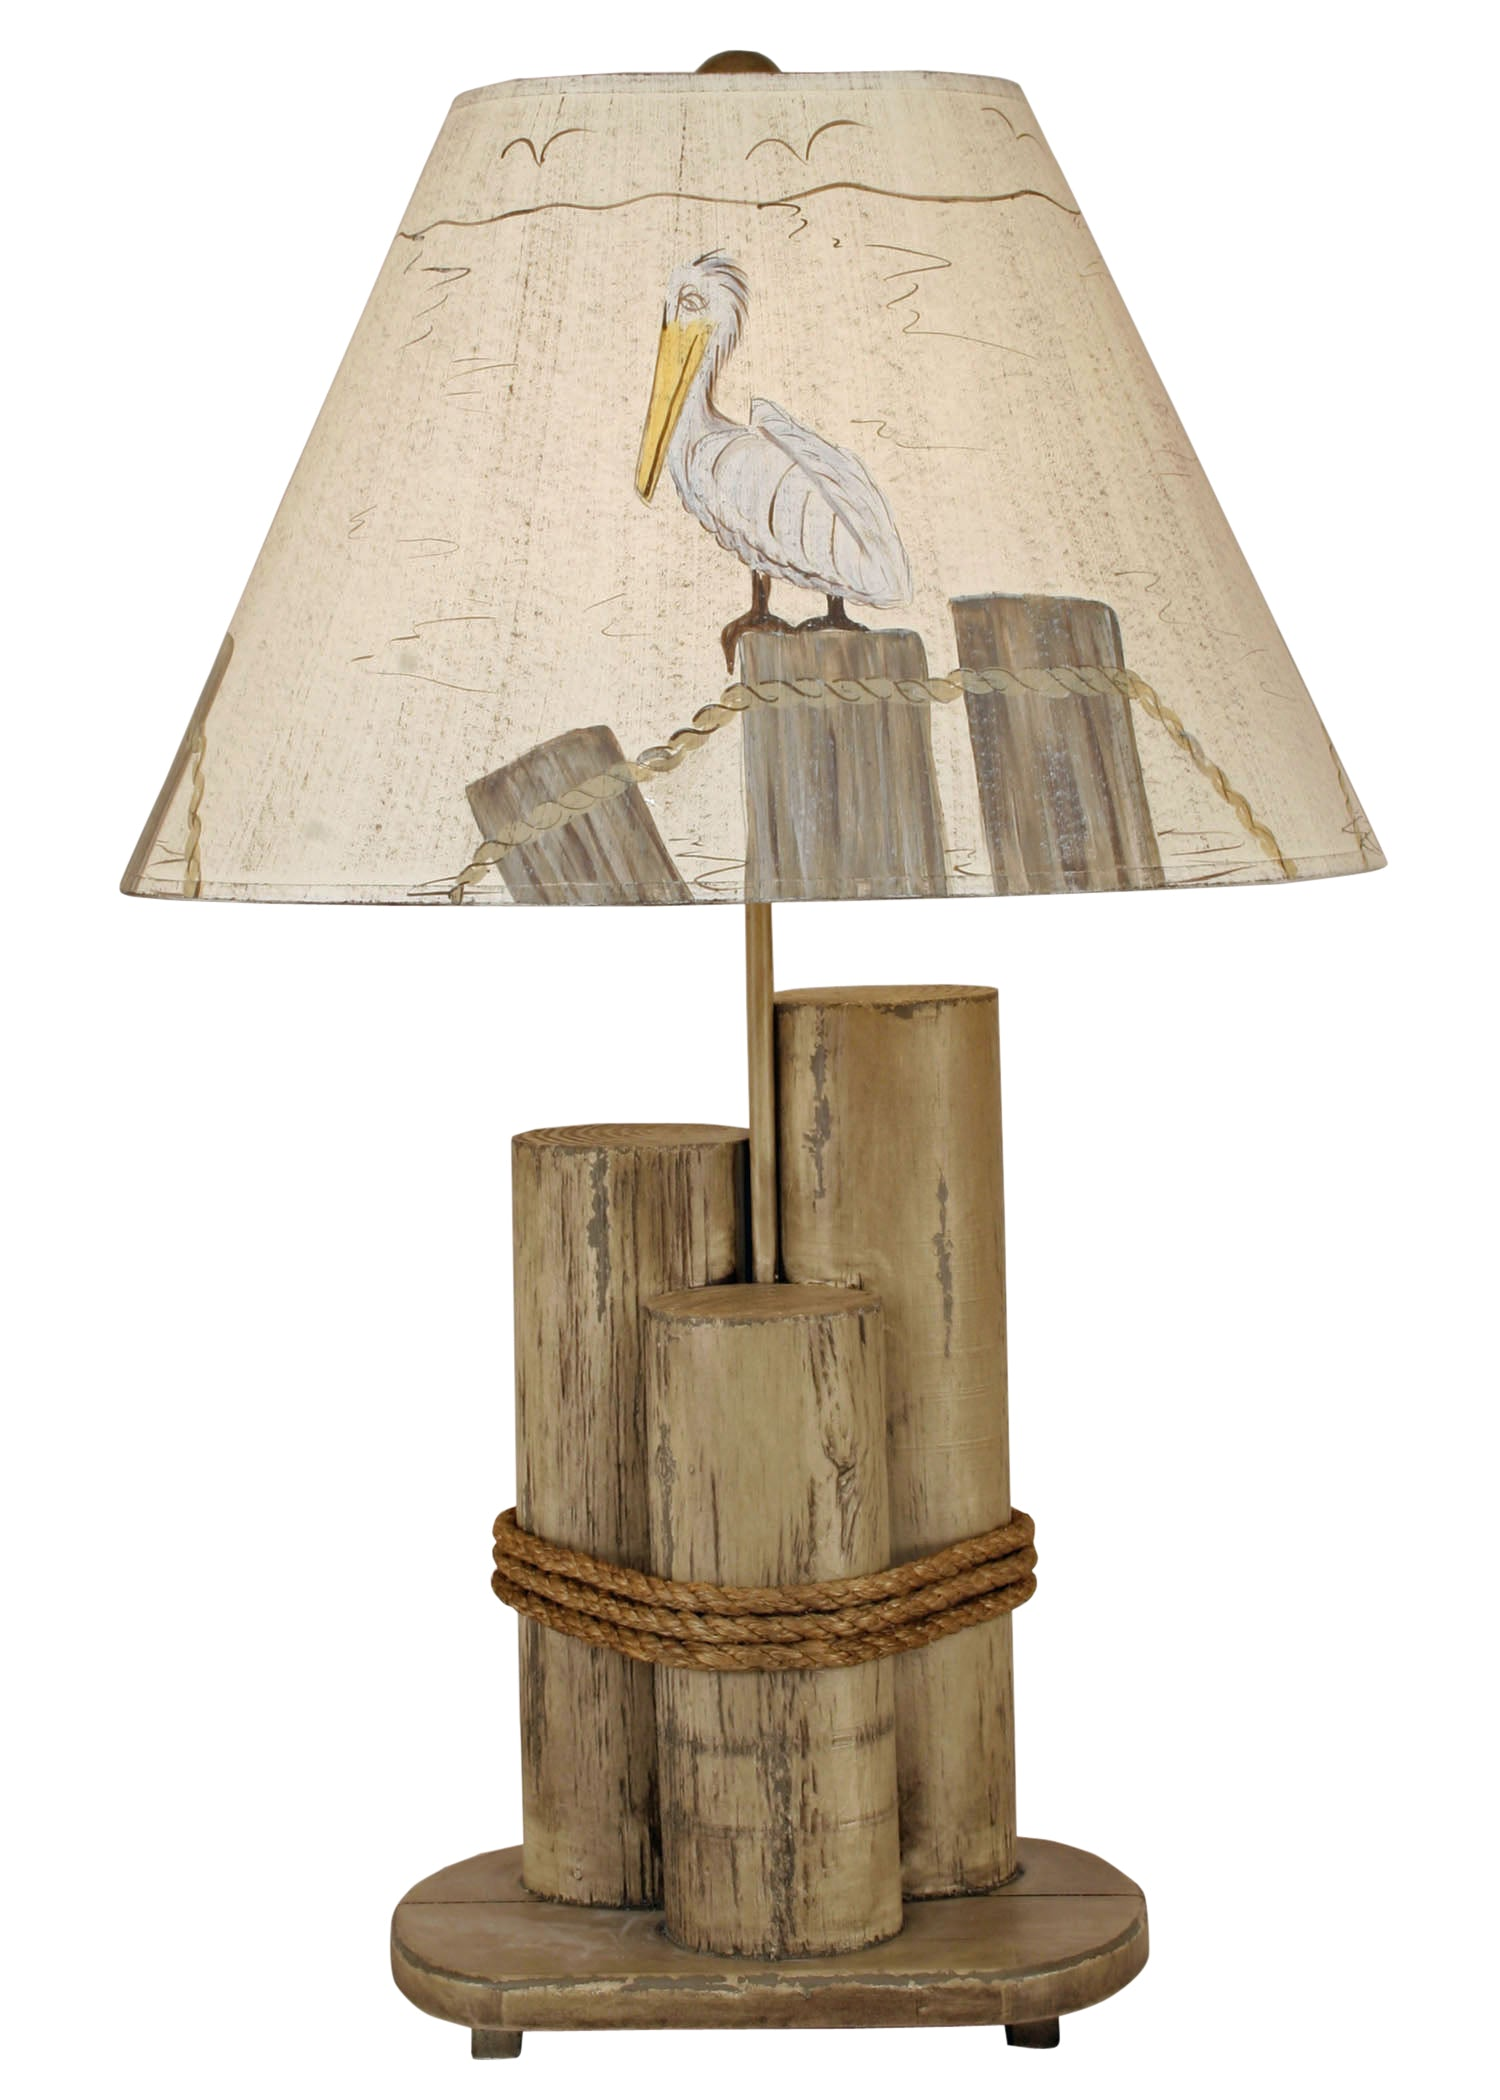 Distressed Grey Dock Pilings Table Lamp w/ Pelican Shade - Coast Lamp Shop